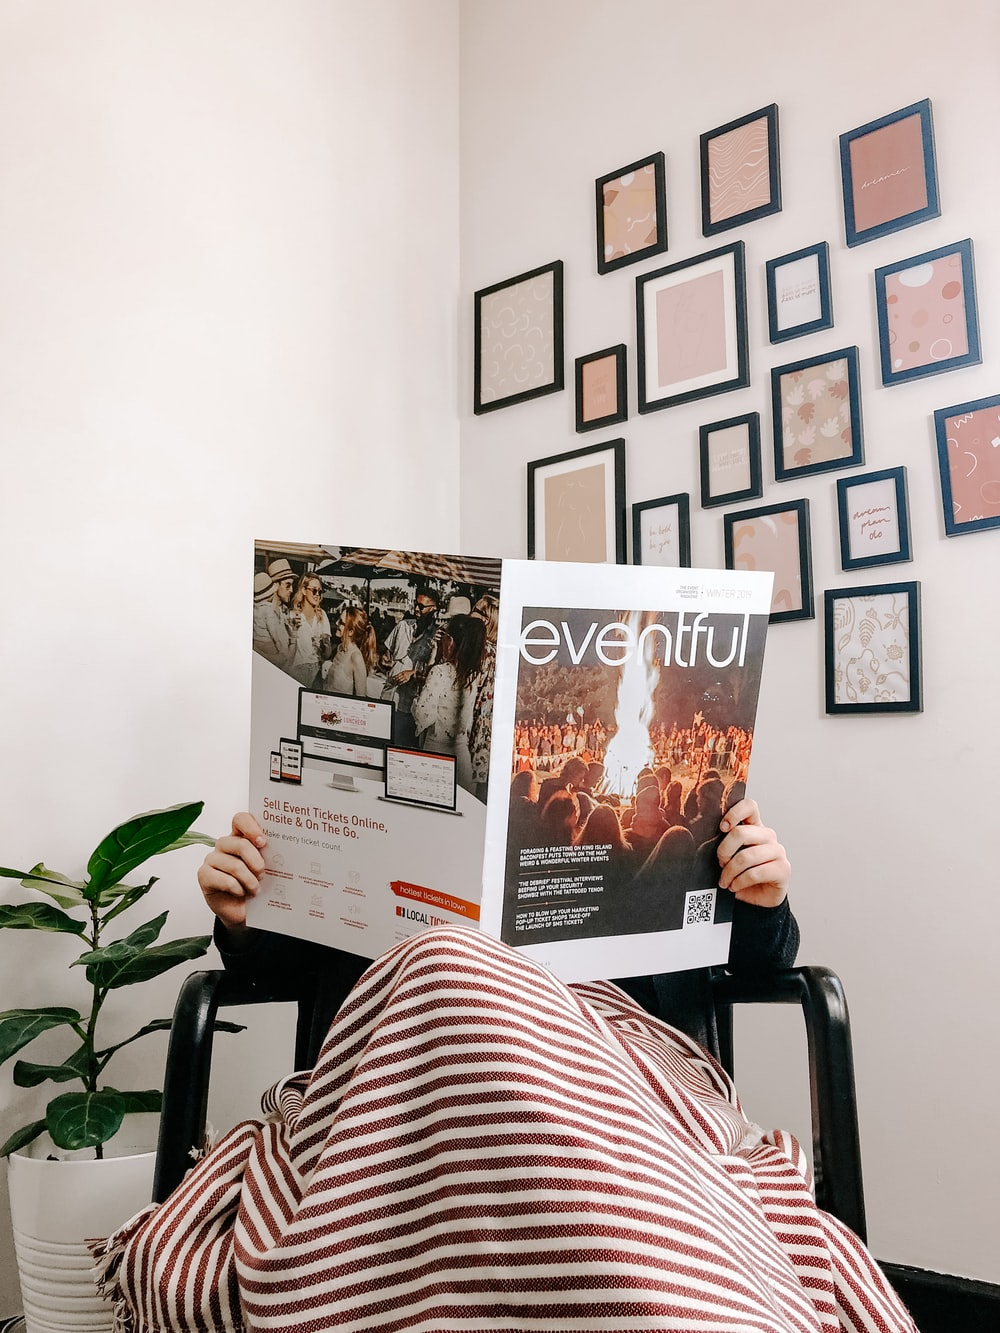 person sitting on armchair reading magazine